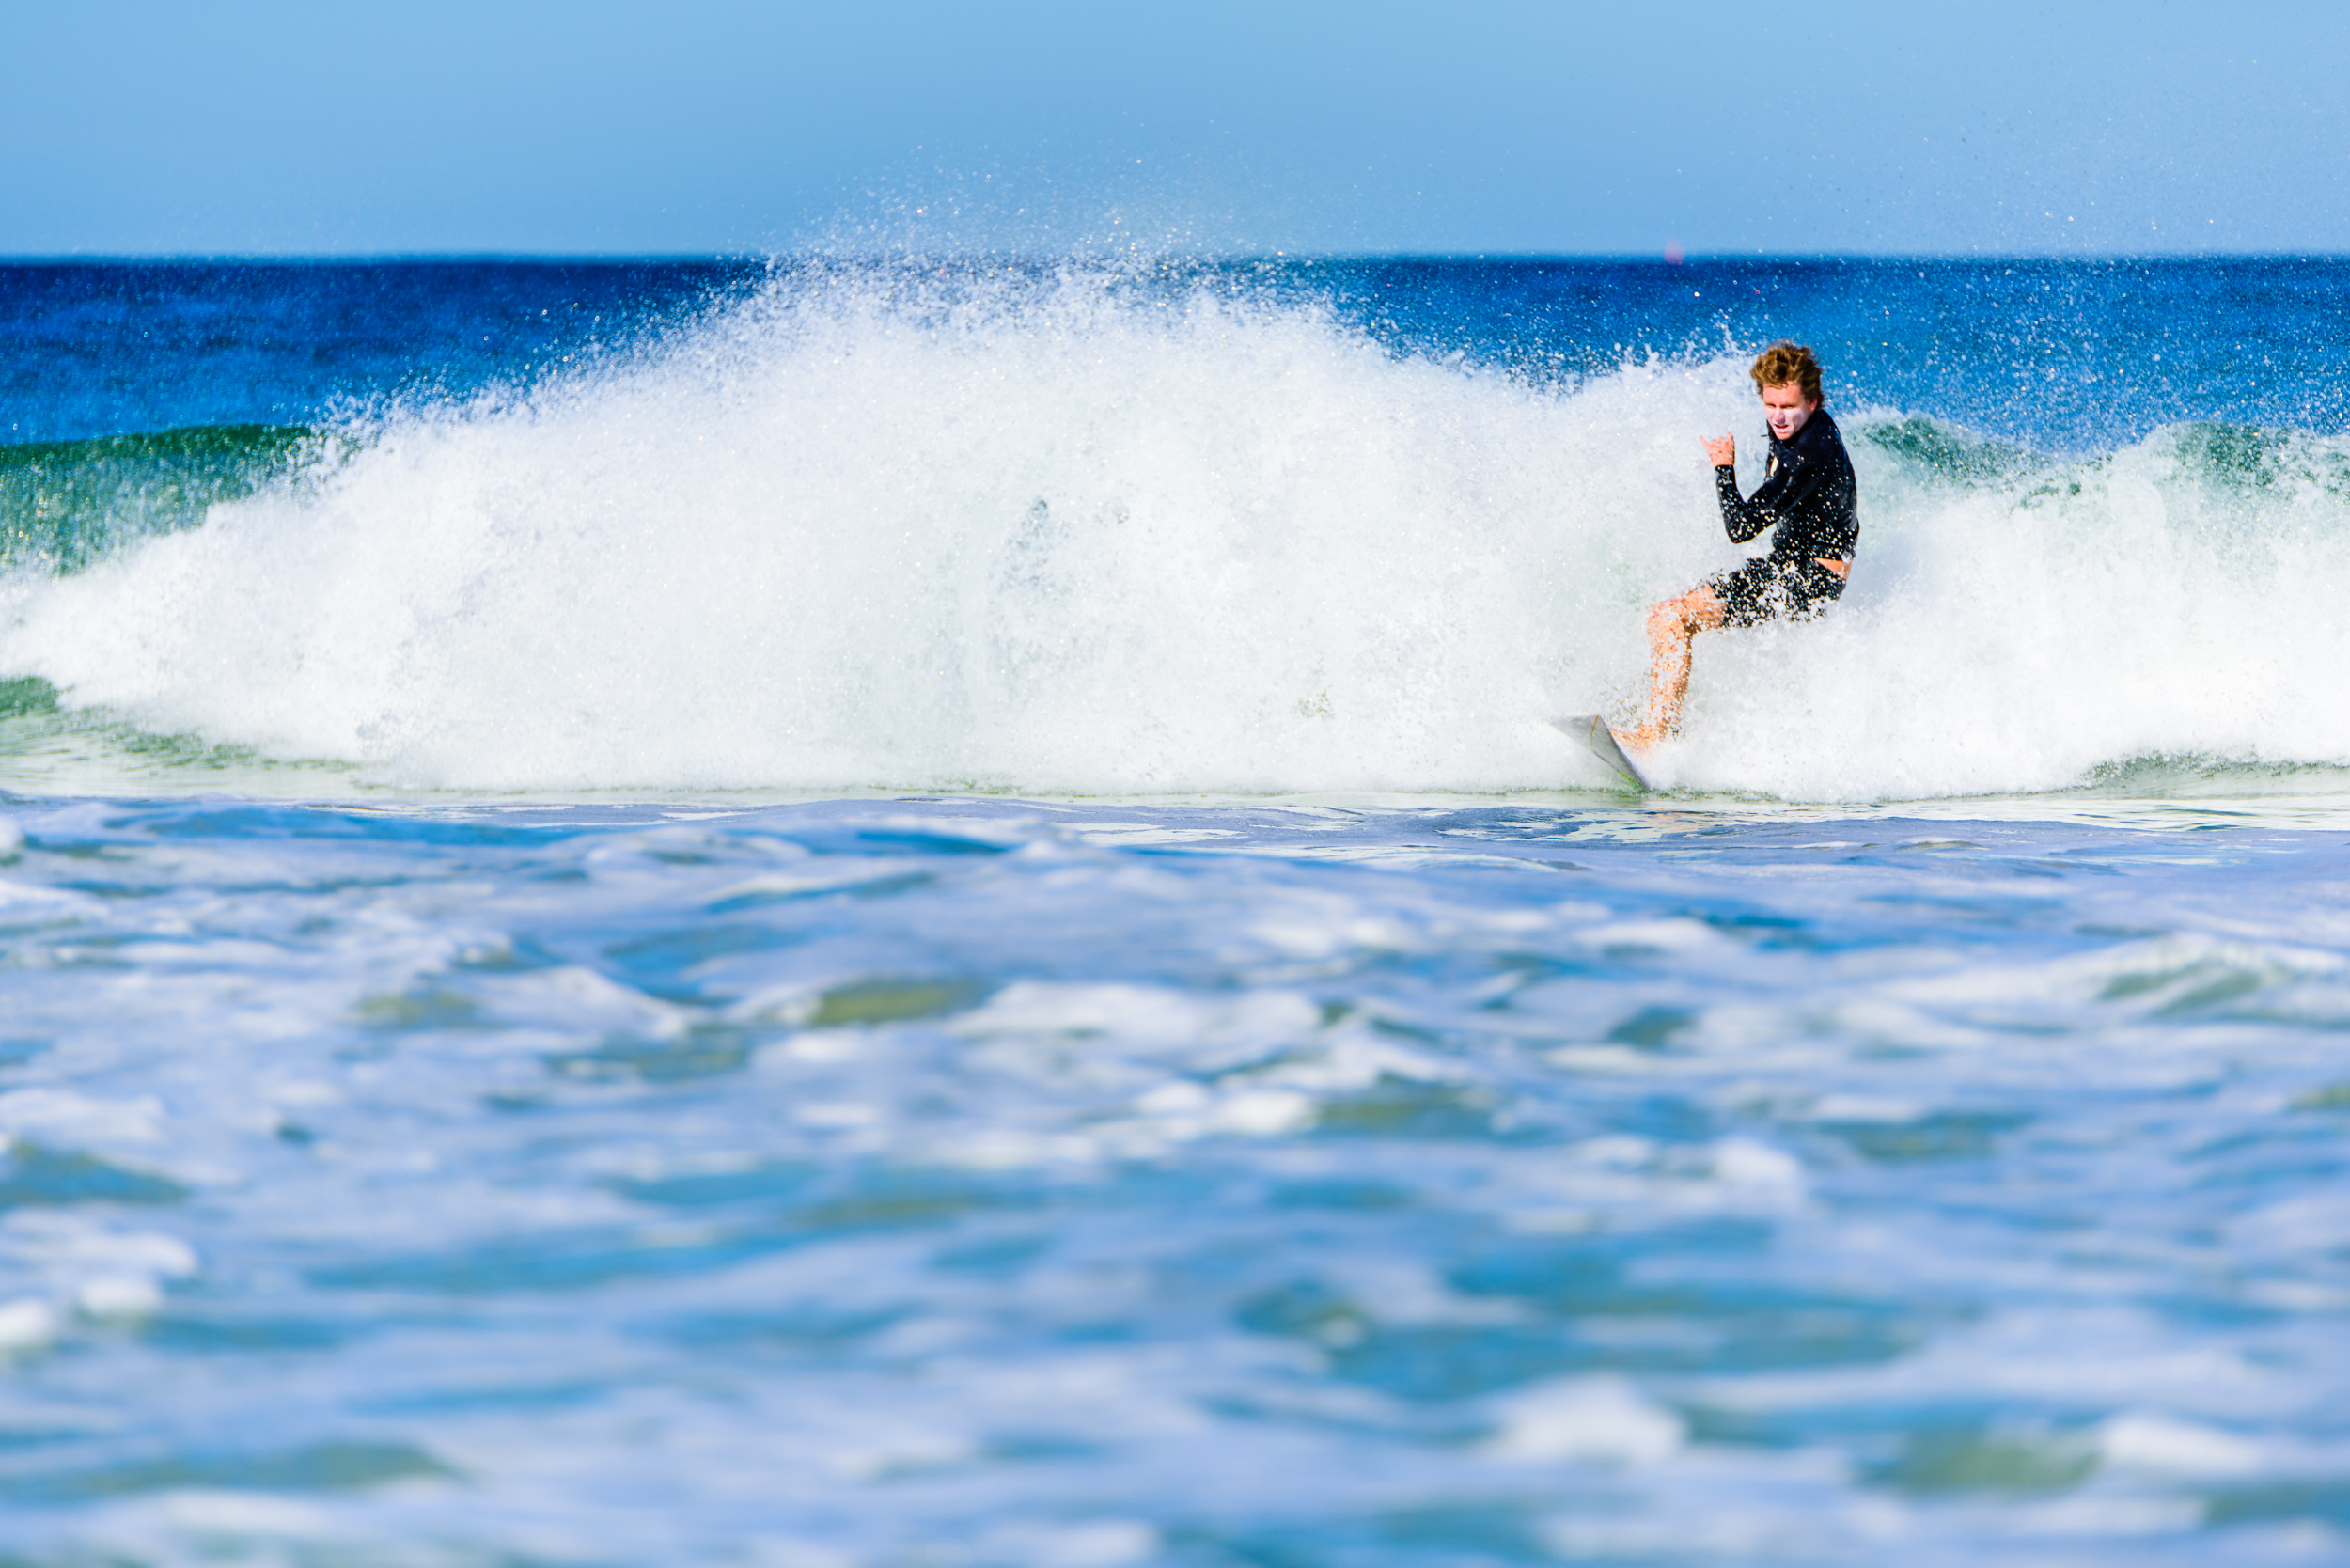 Spyrides_Kyle_Scarbourough_Surf_#1Sessions_23.2.2017-6.jpg